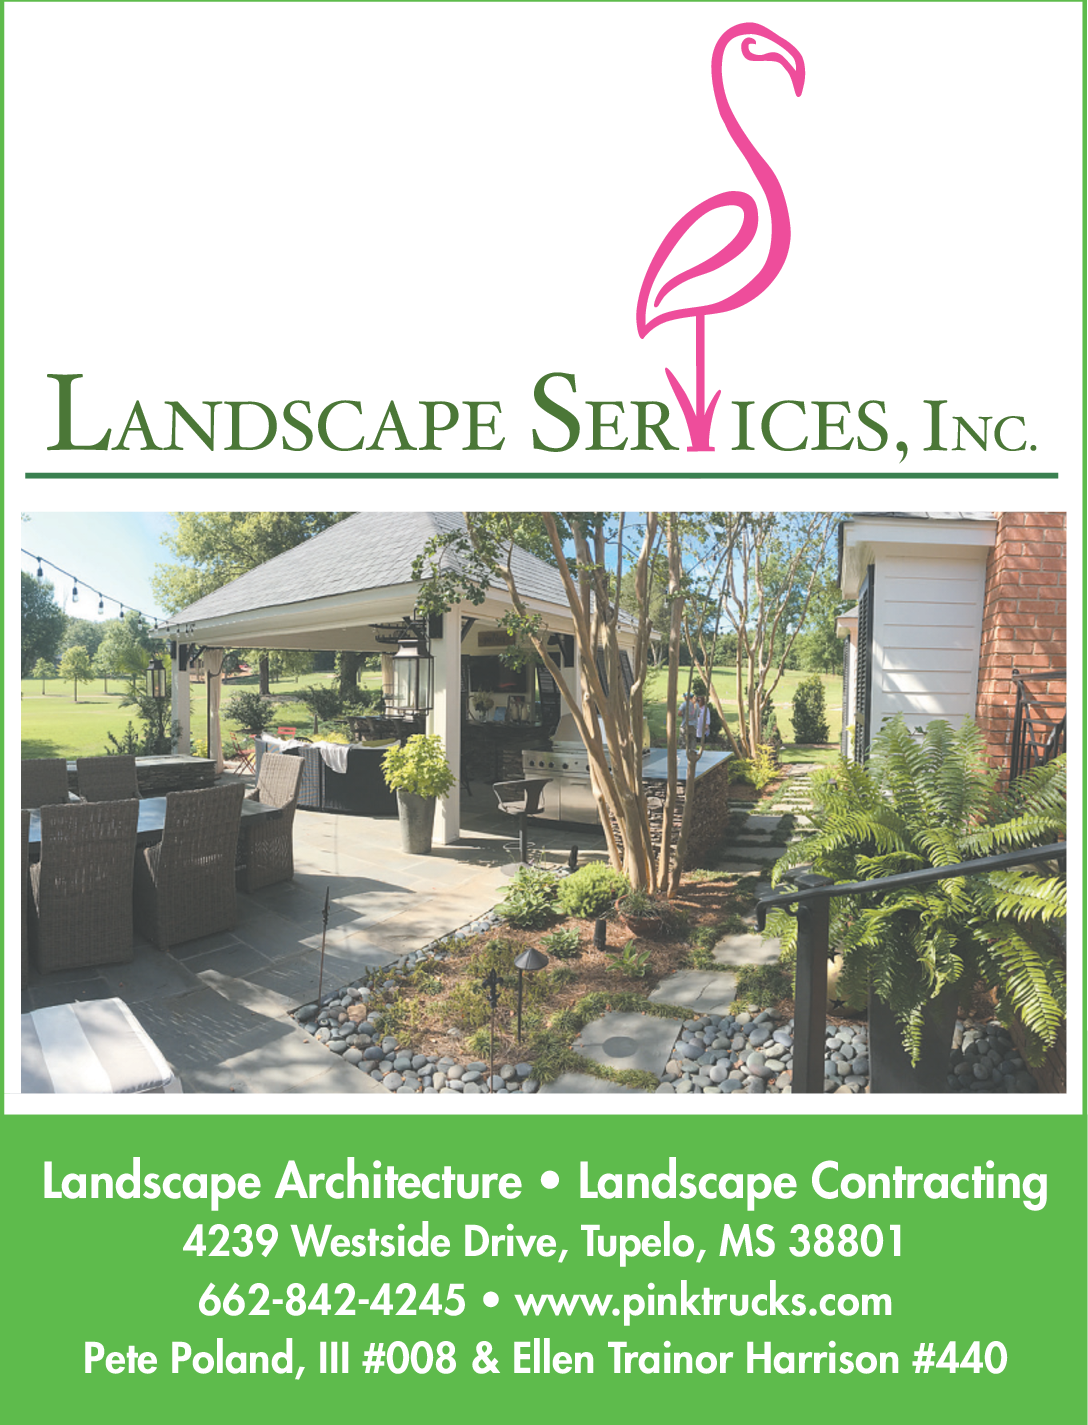 Landscape Contracting And Architecture Services in Tupelo, MS, Landscape &  Sprinklers - LANDSCAPE SERVICES,INC - Landscape Contracting And Architecture Services In Tupelo, MS